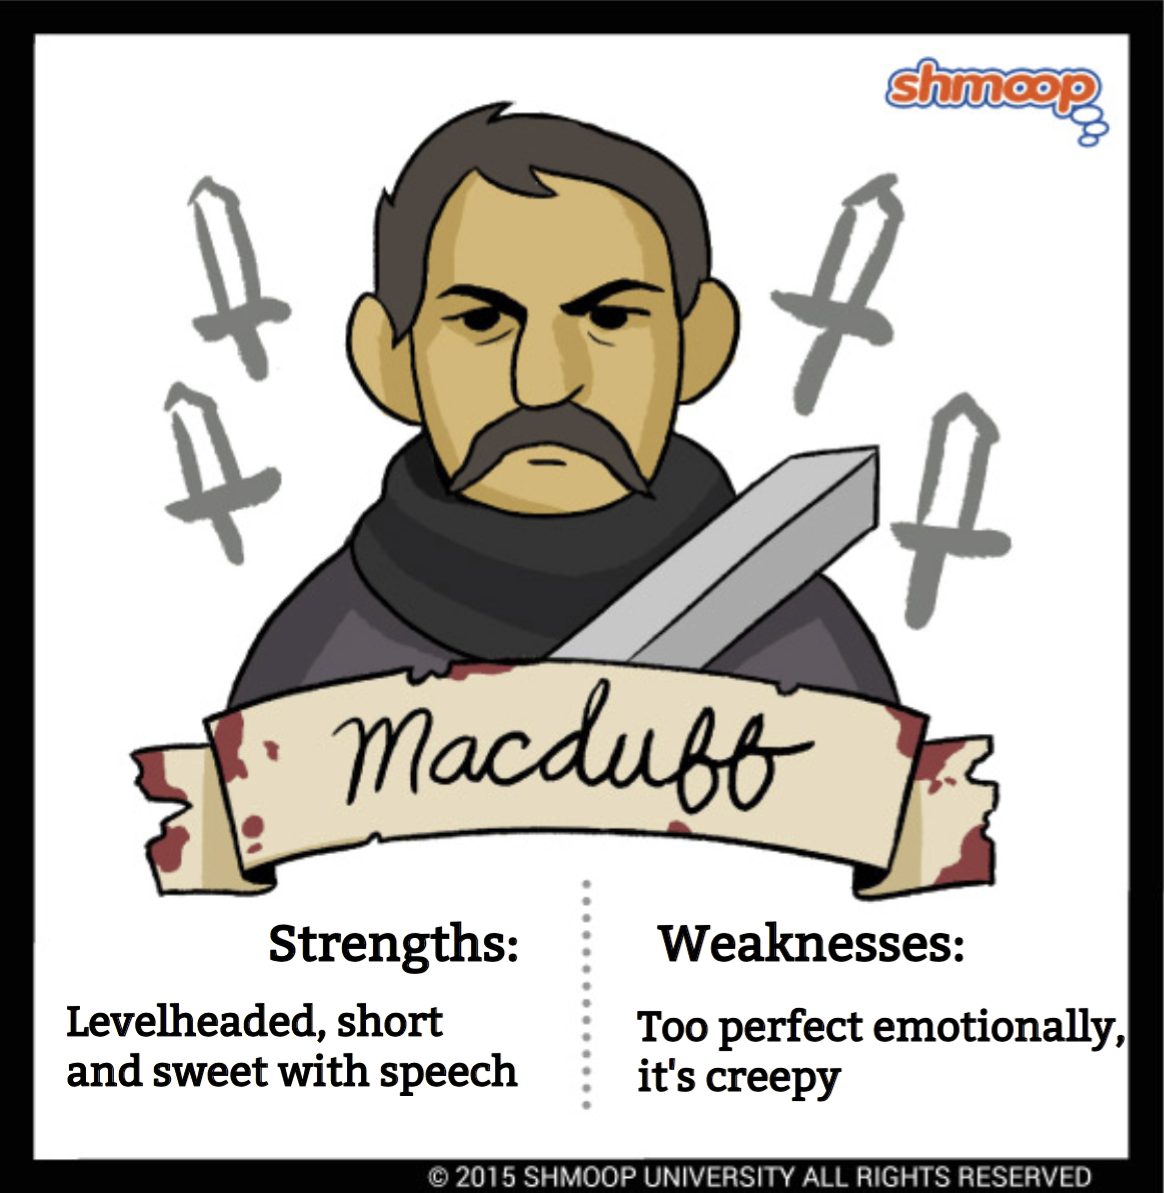 compare and contrast macbeth macduff and banquo